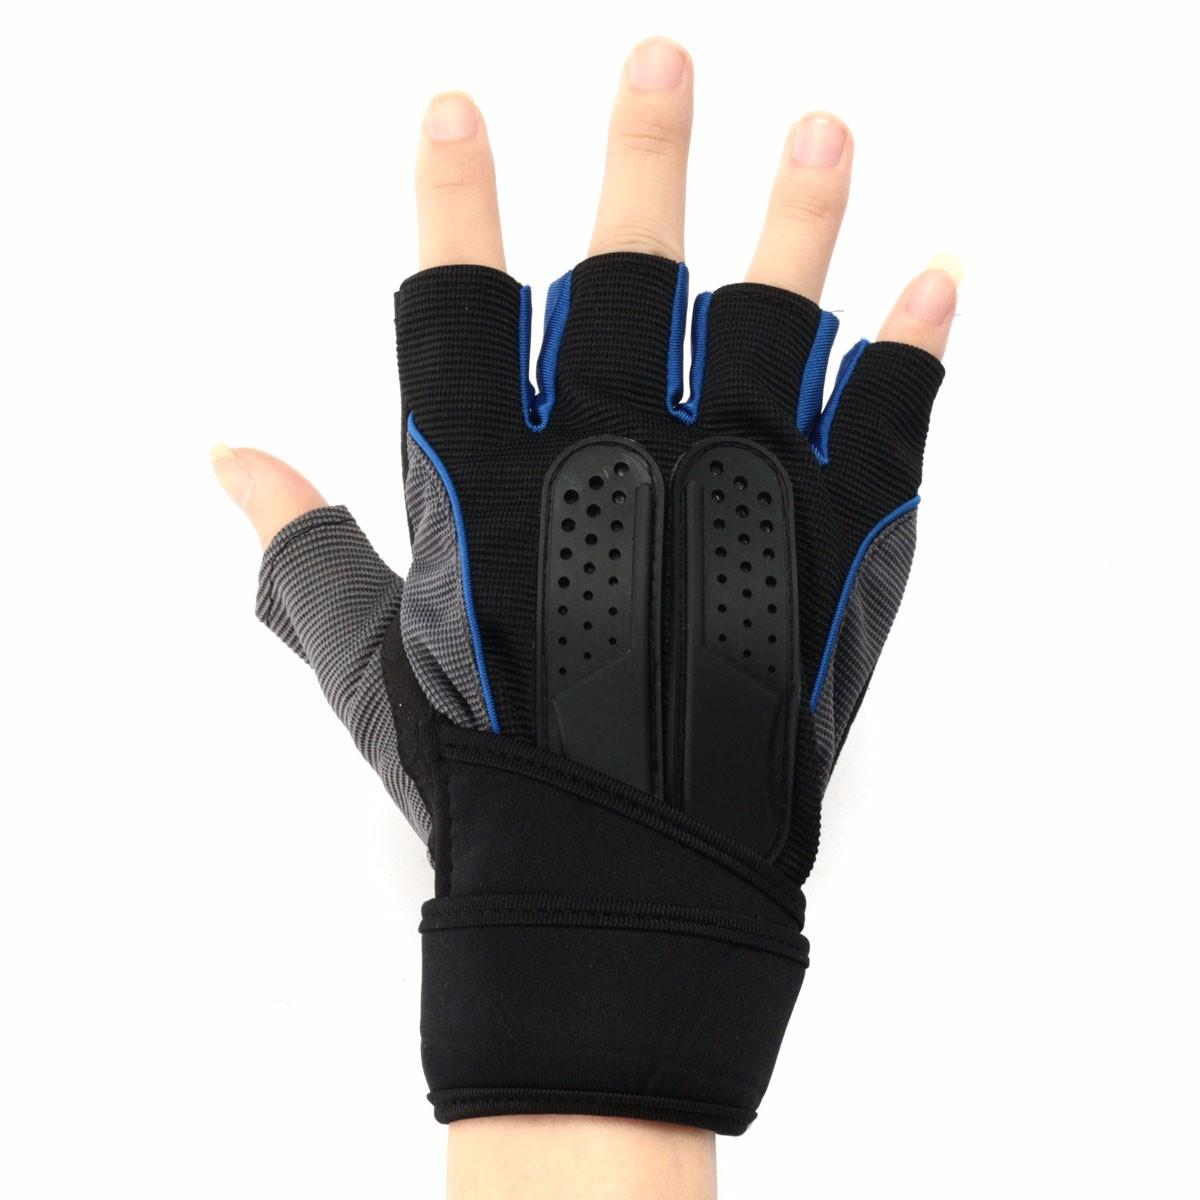 M Size Lifting Fitness Outdoor Sports Working Half Finger Gloves Motorcycle Bicycle Cycling